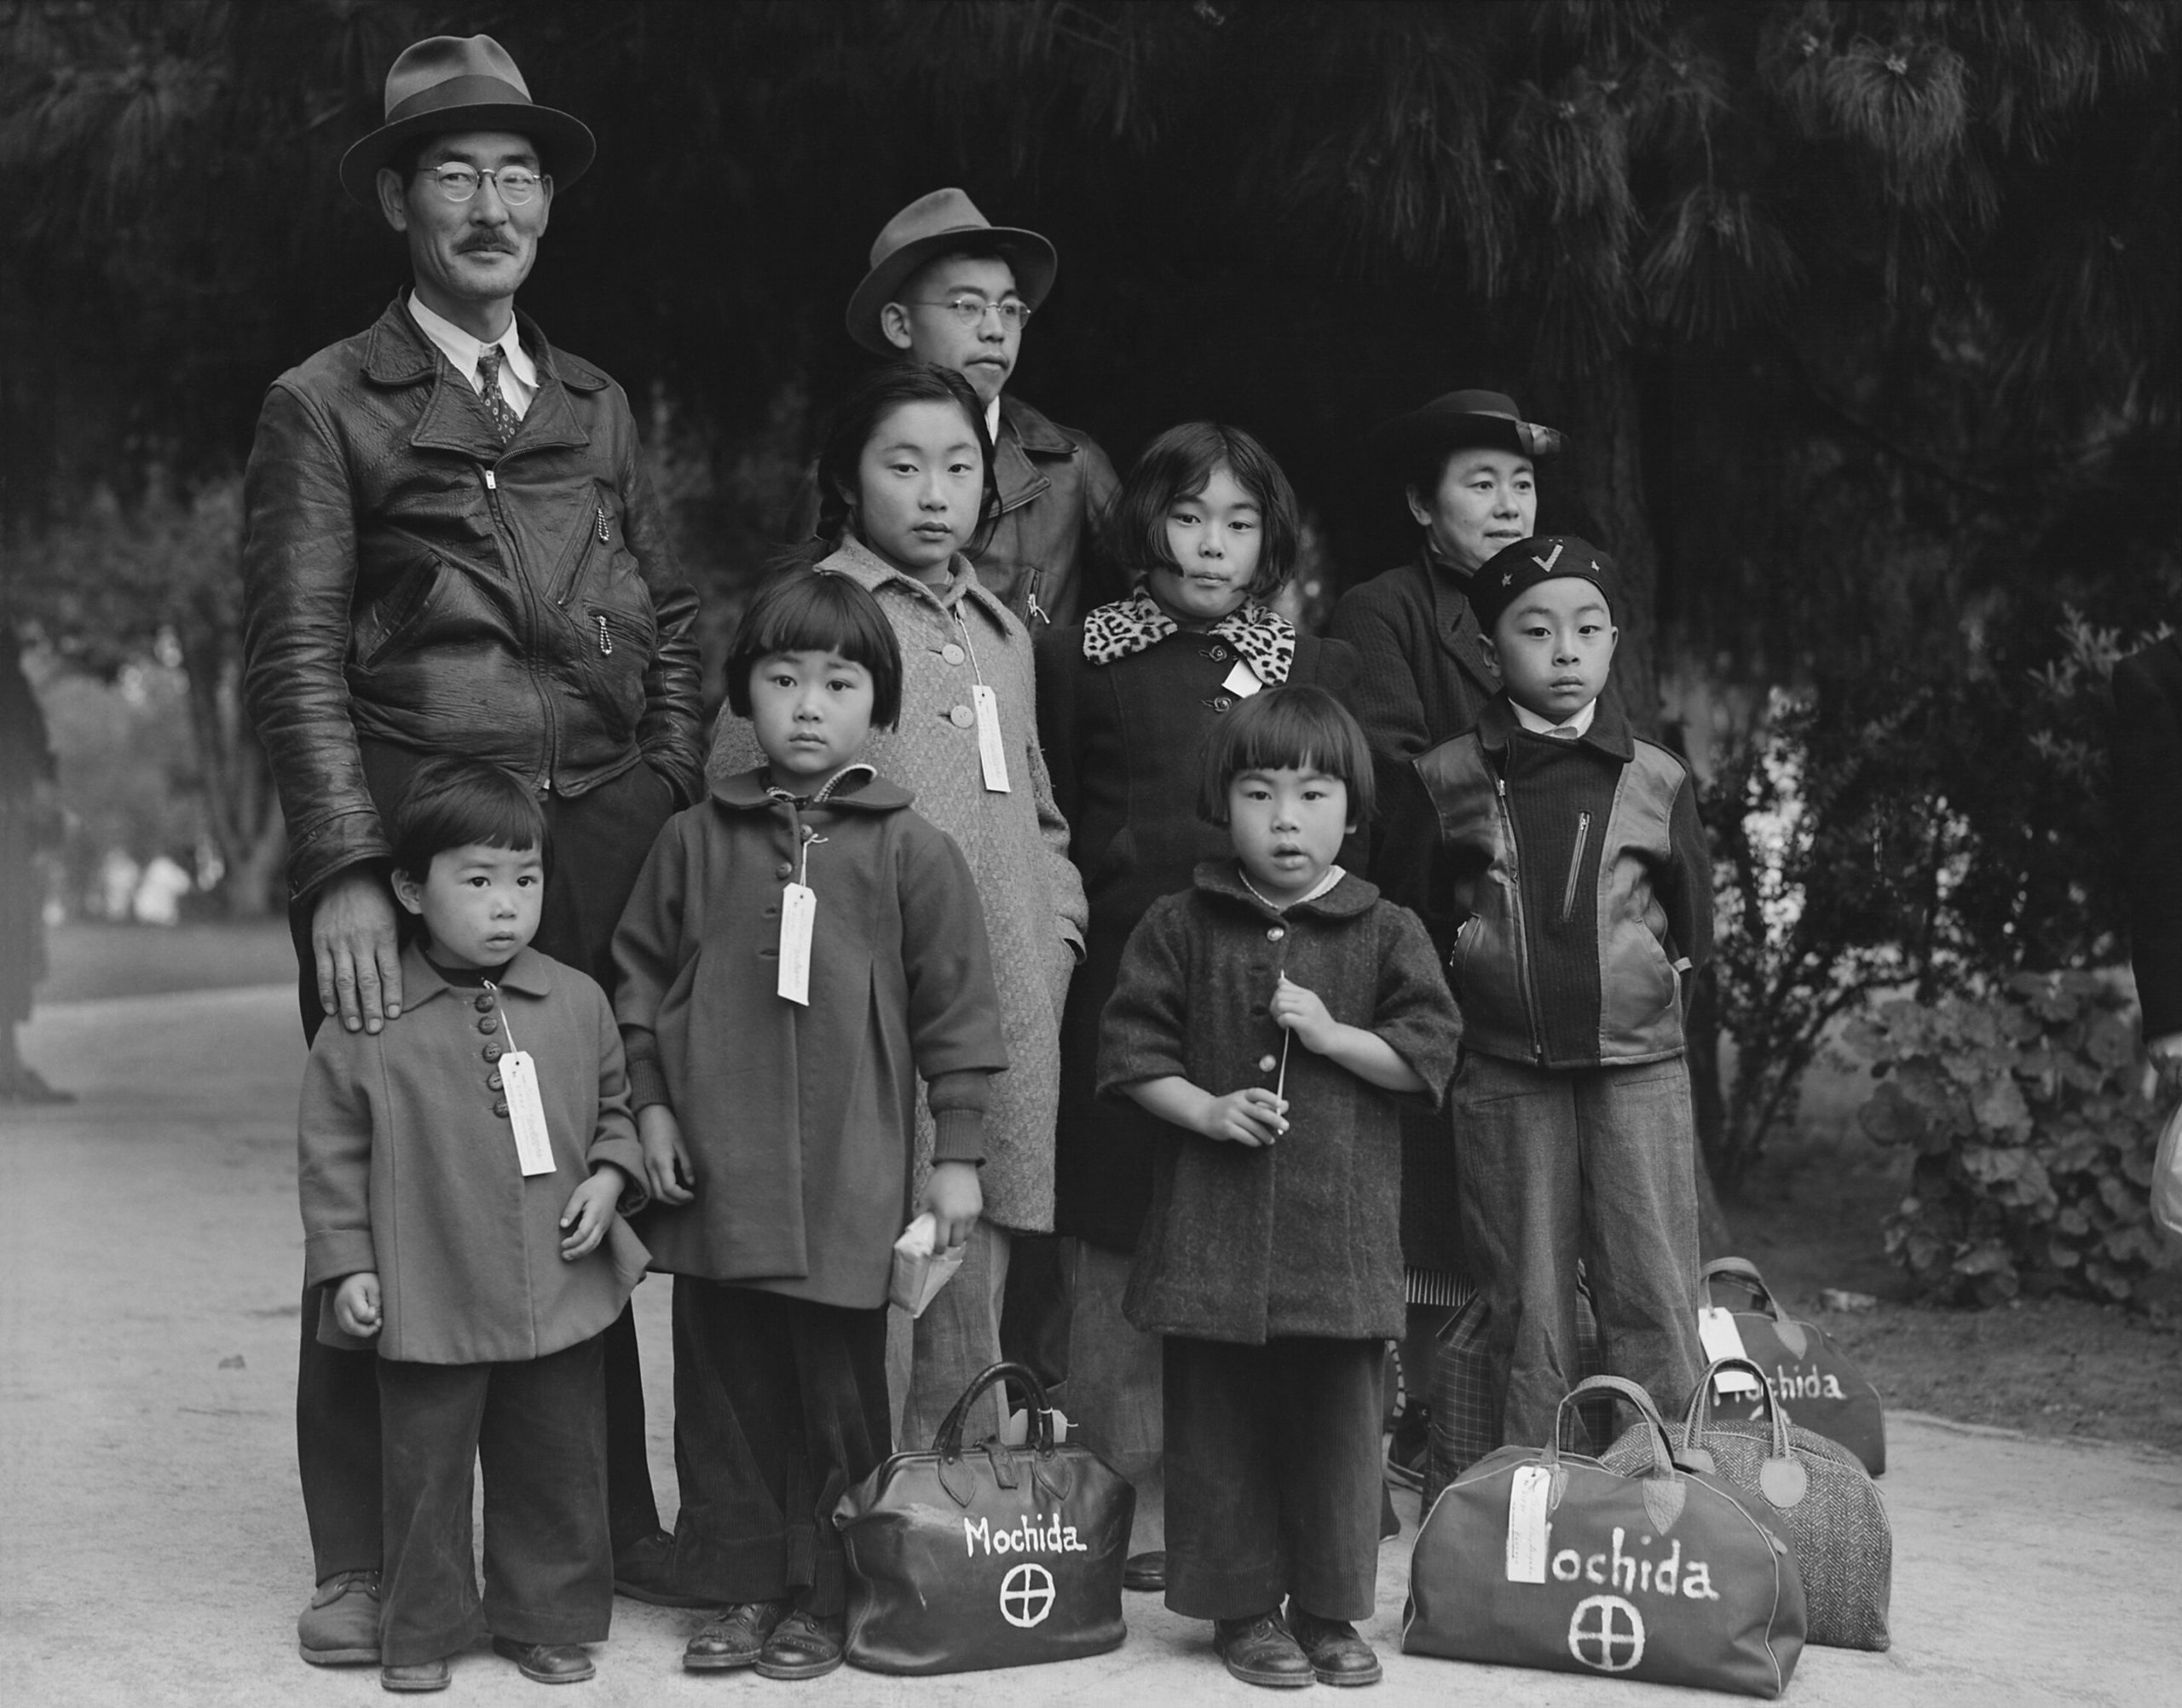 Mochida family awaiting transport to an internment camp